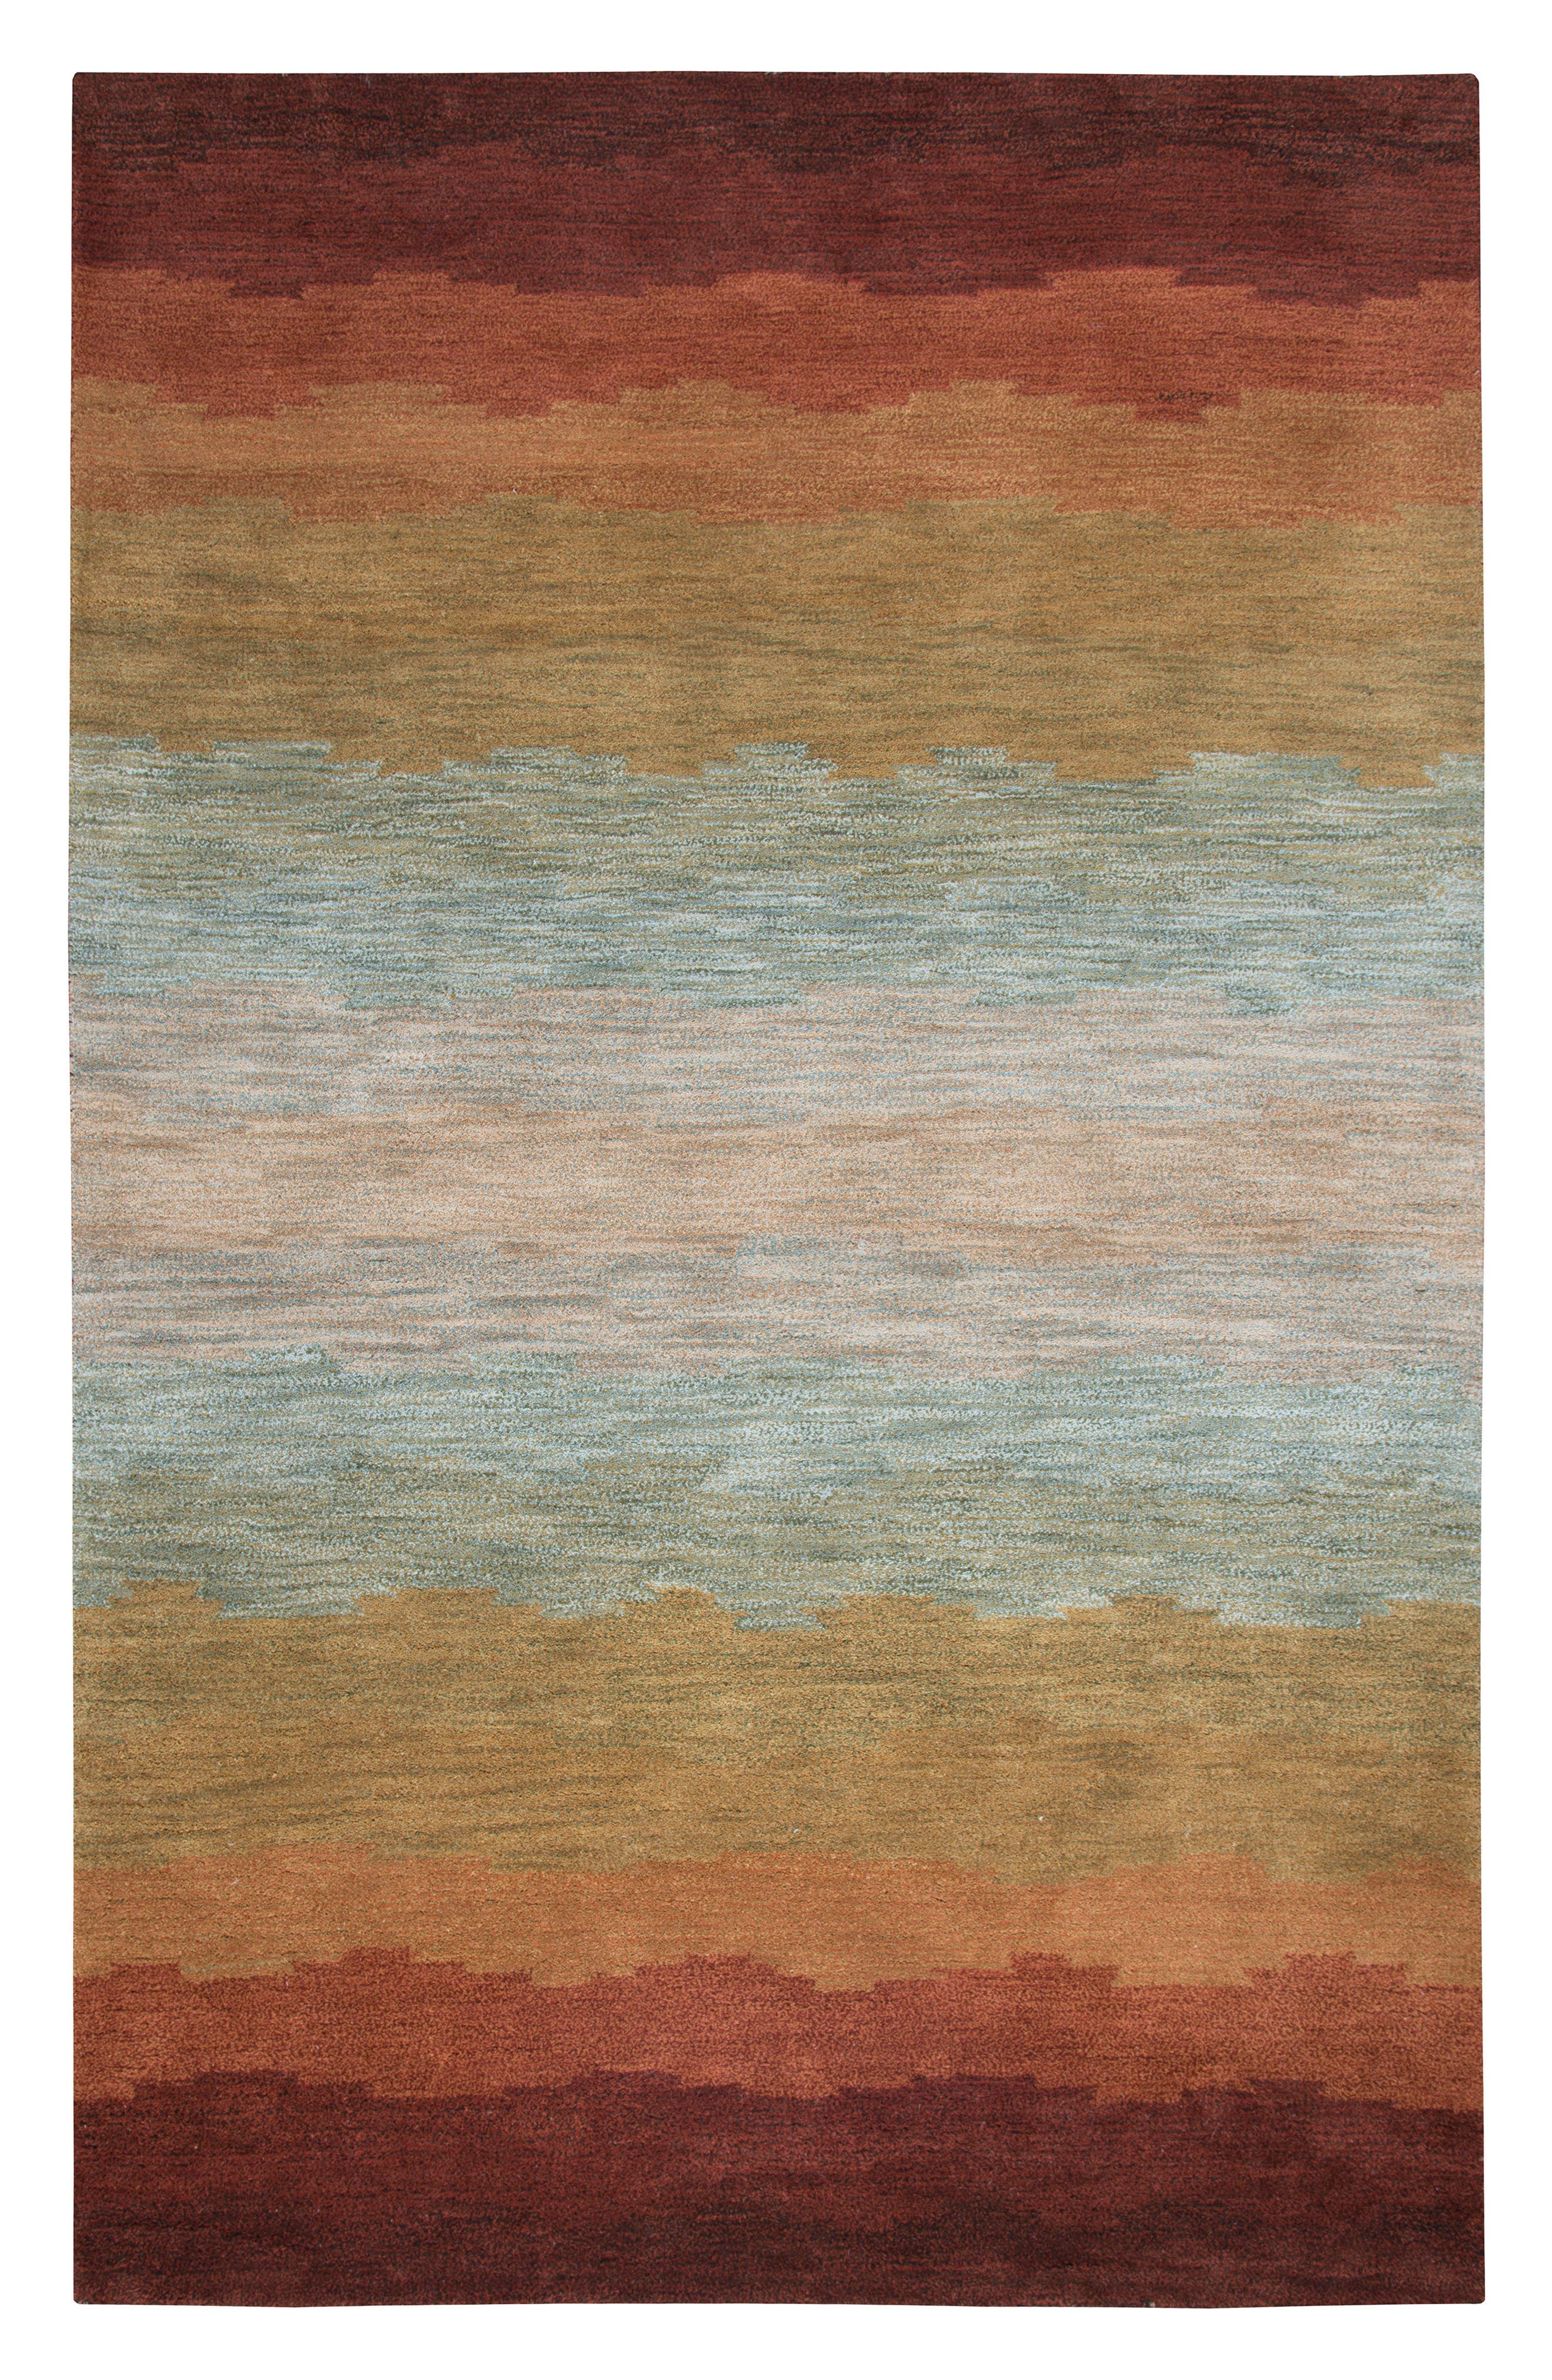 Desert Oasis Hand Tufted Wool Area Rug,                         Main,                         color, 220